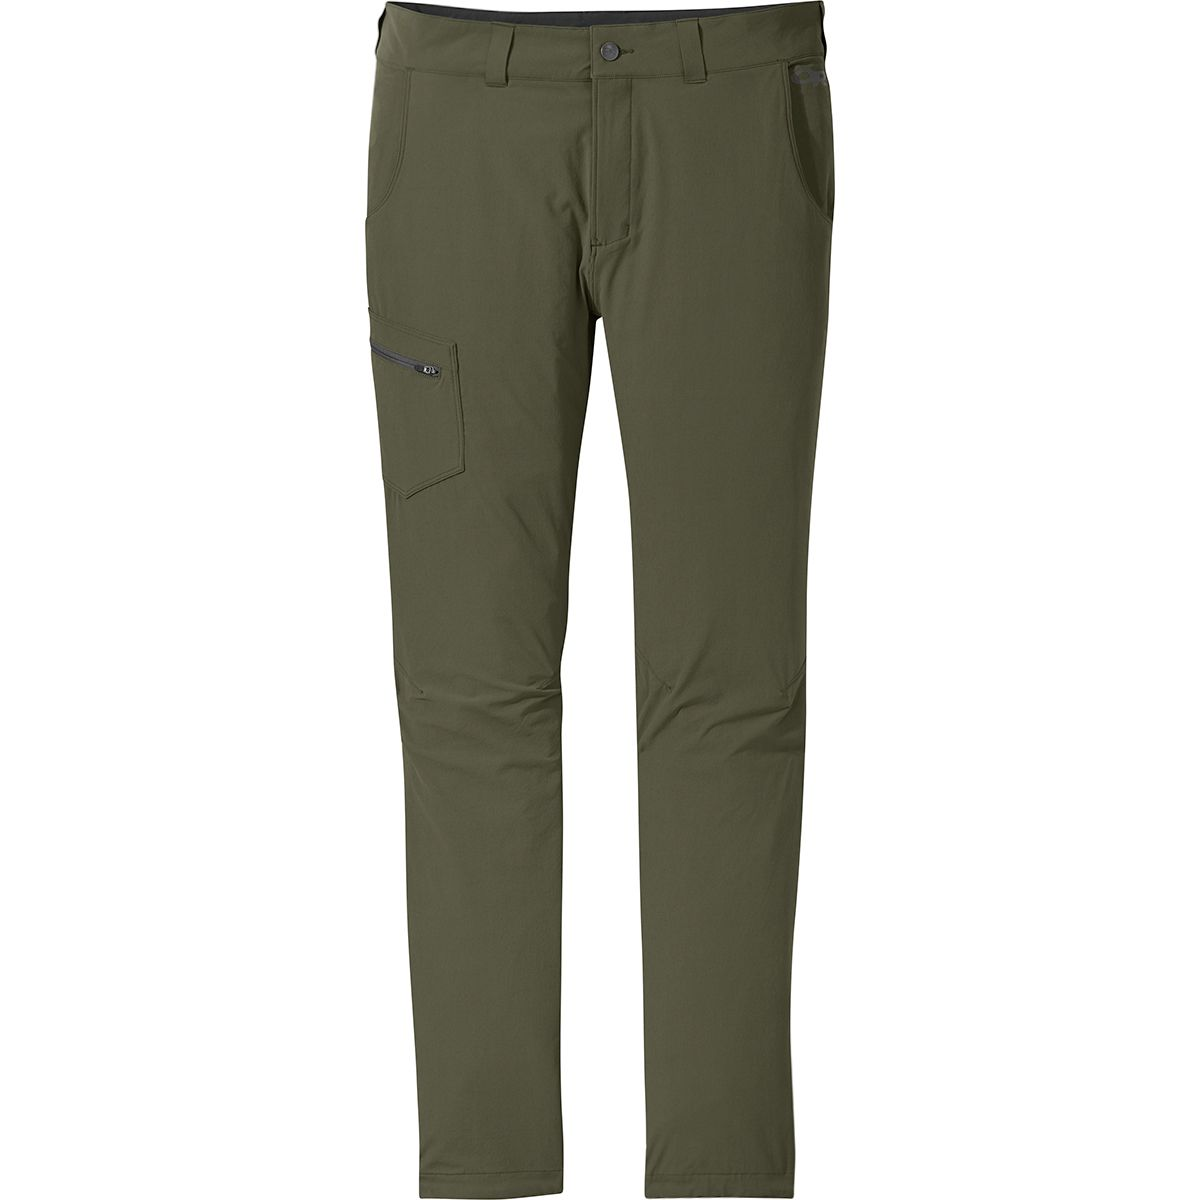 Outdoor Research Ferrosi Pants